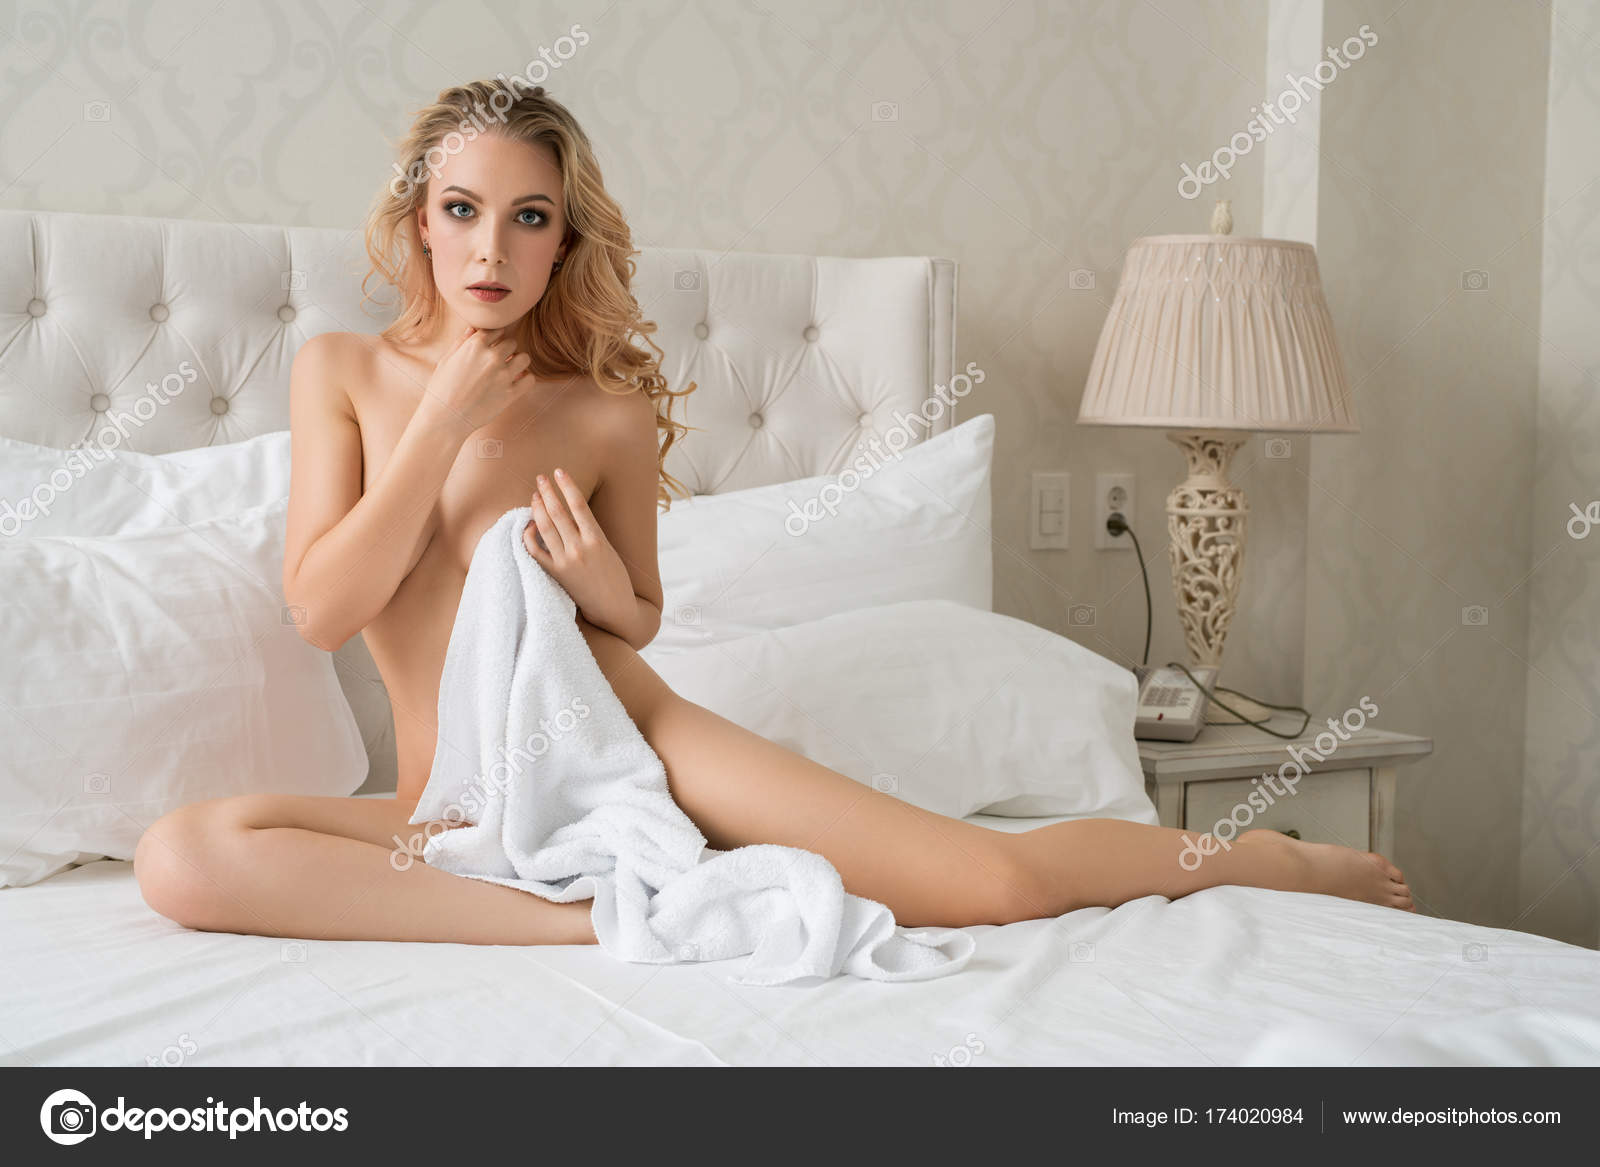 Nude blonde hotel room